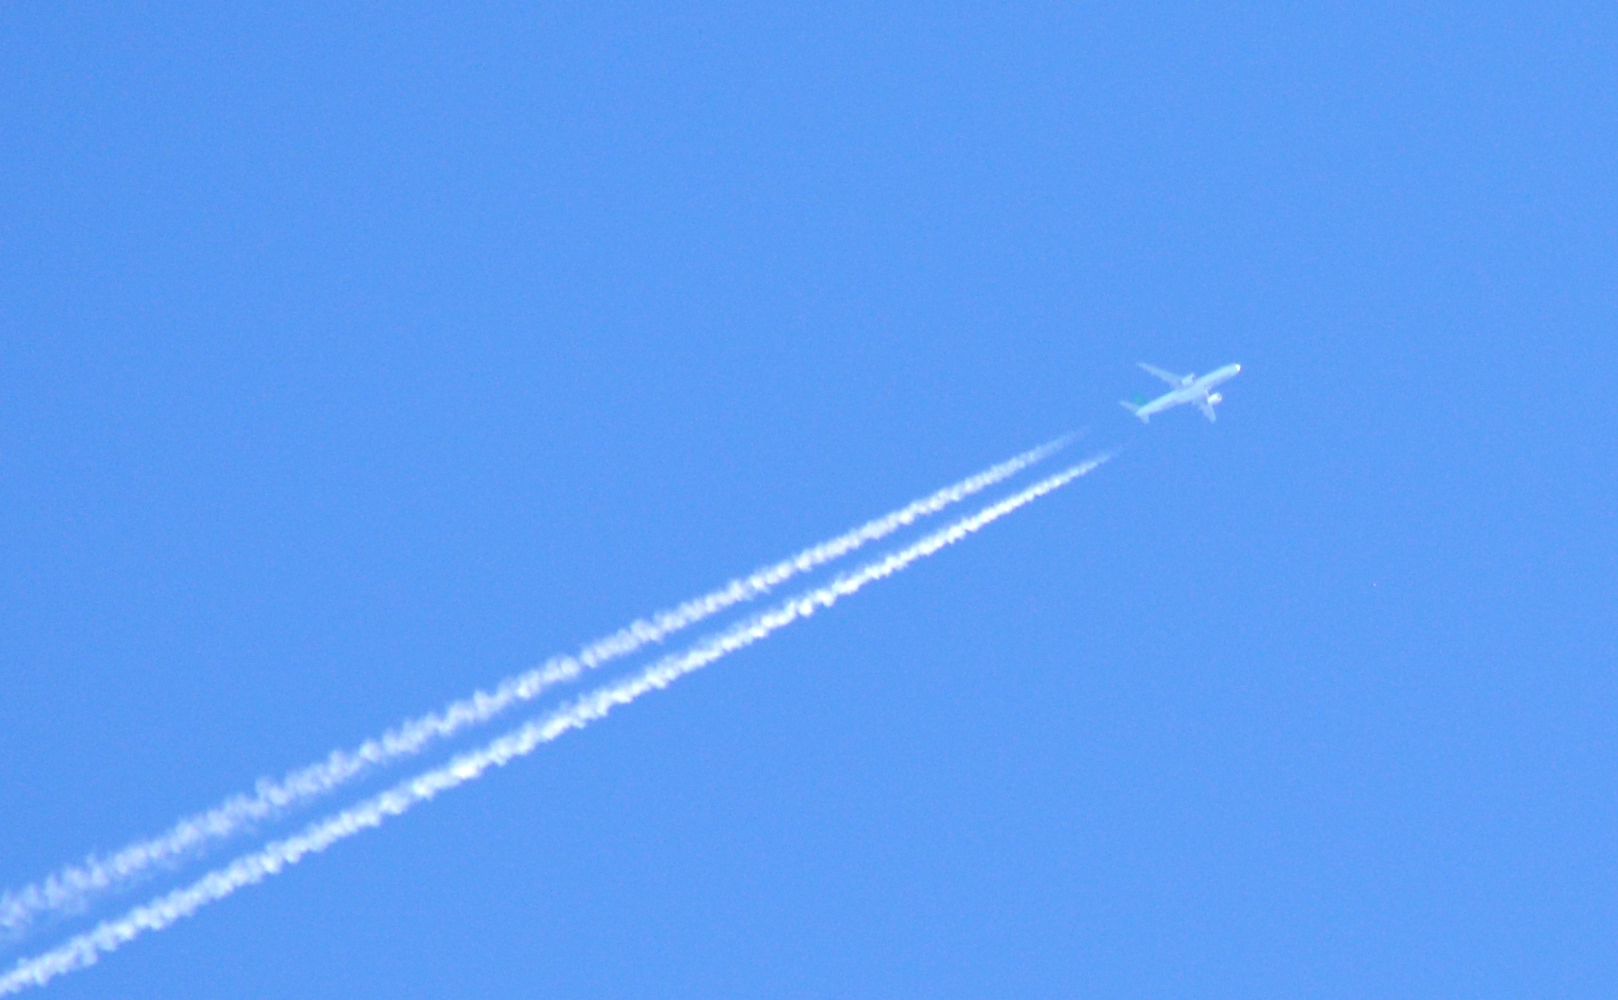 business IIdiom SMALL JET ON BLUE SKY